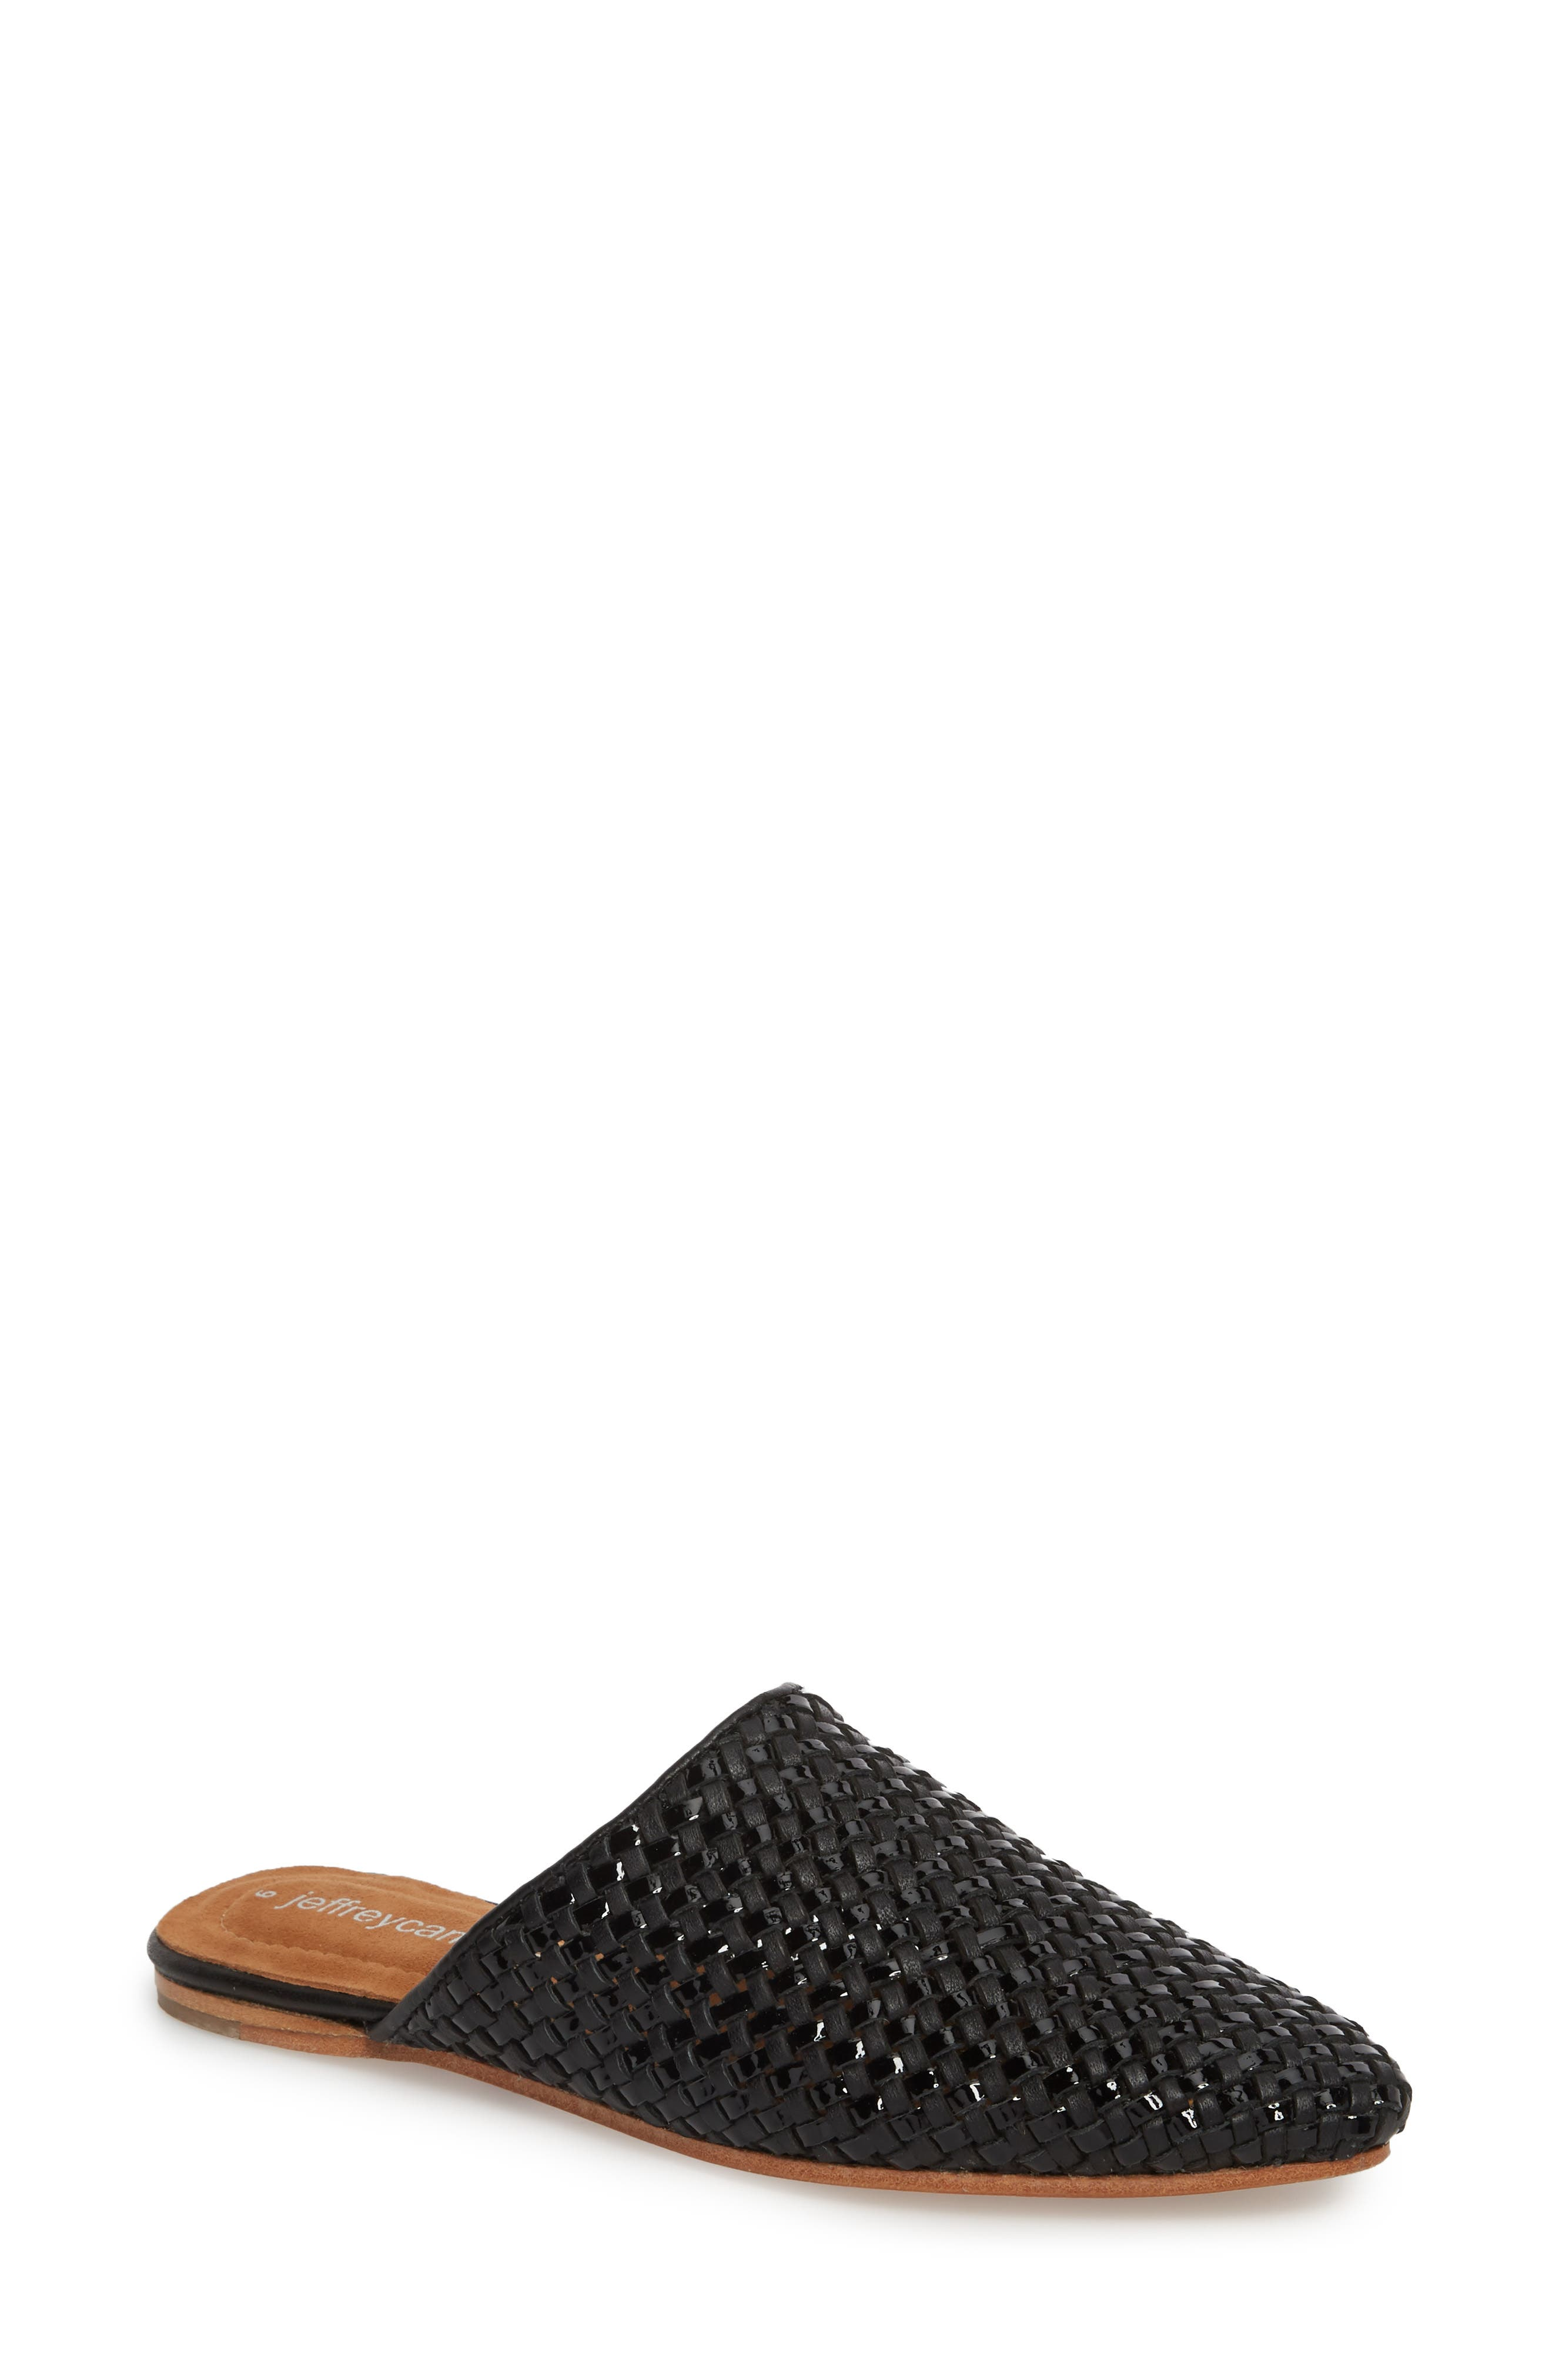 Dashi Woven Mule,                             Main thumbnail 1, color,                             BLACK PATENT